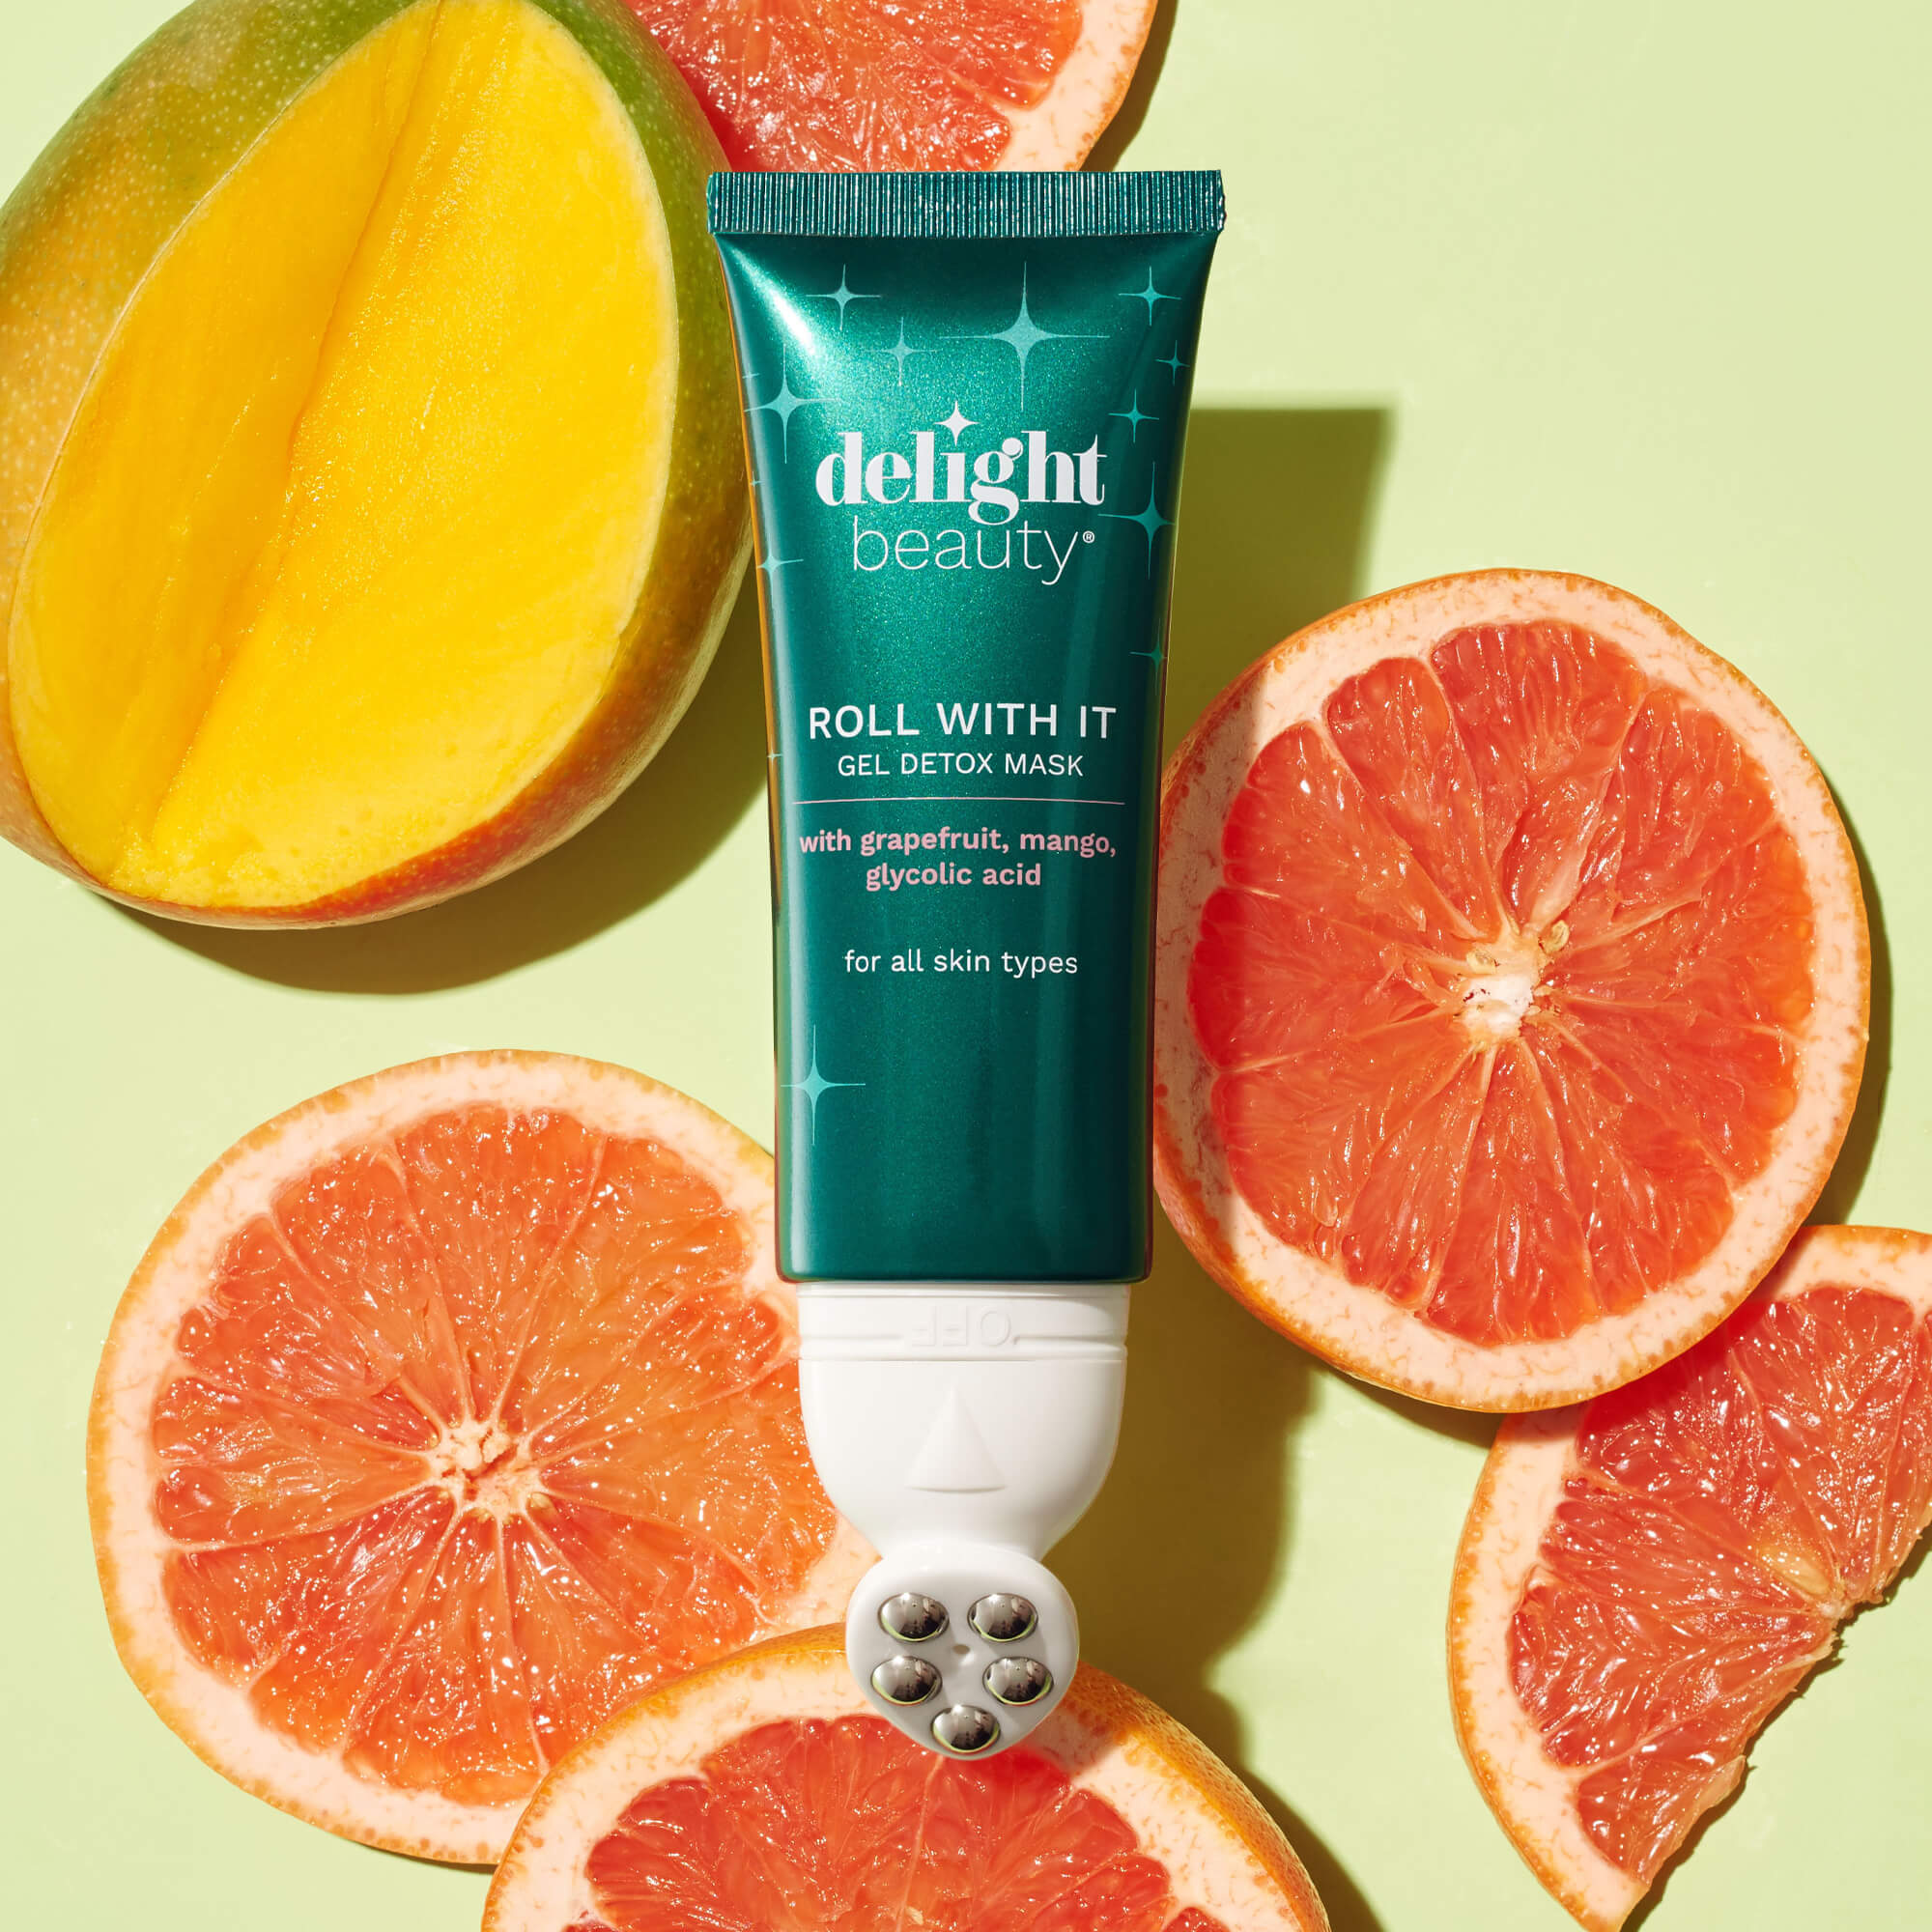 roll with it gel detox mask surrounded by slices of fresh mango and grapefruit